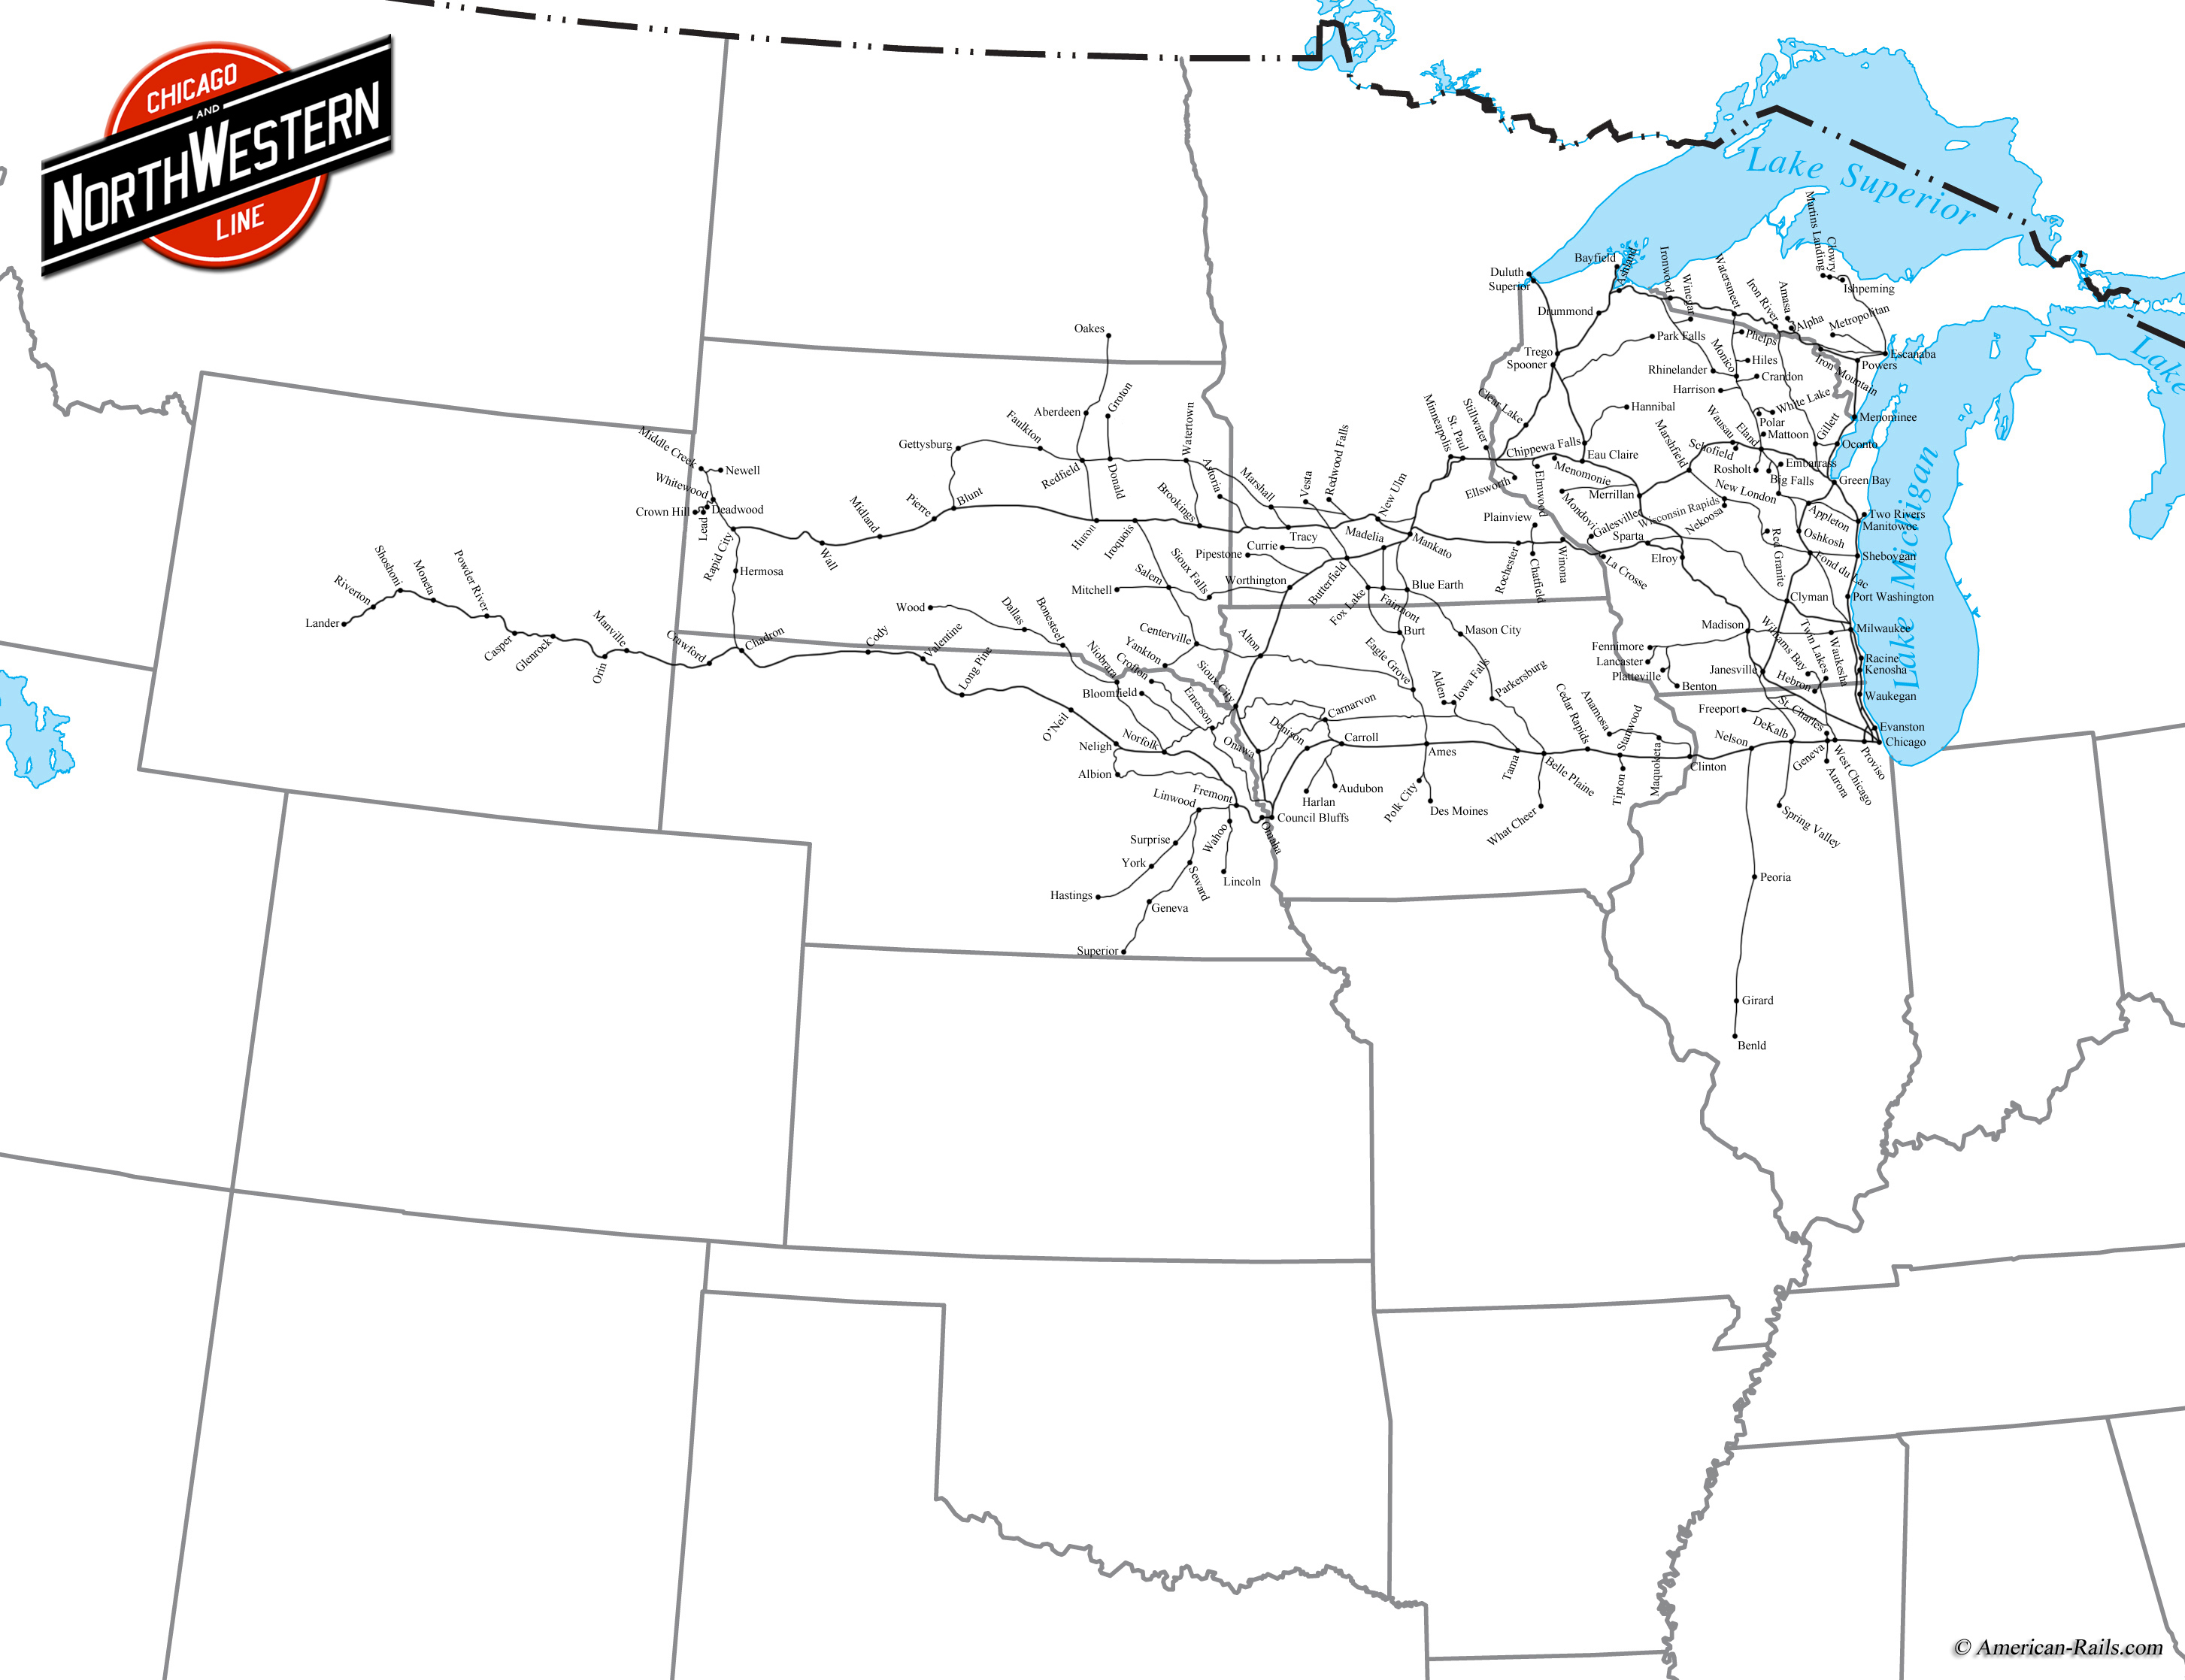 The Chicago and North Western Railway